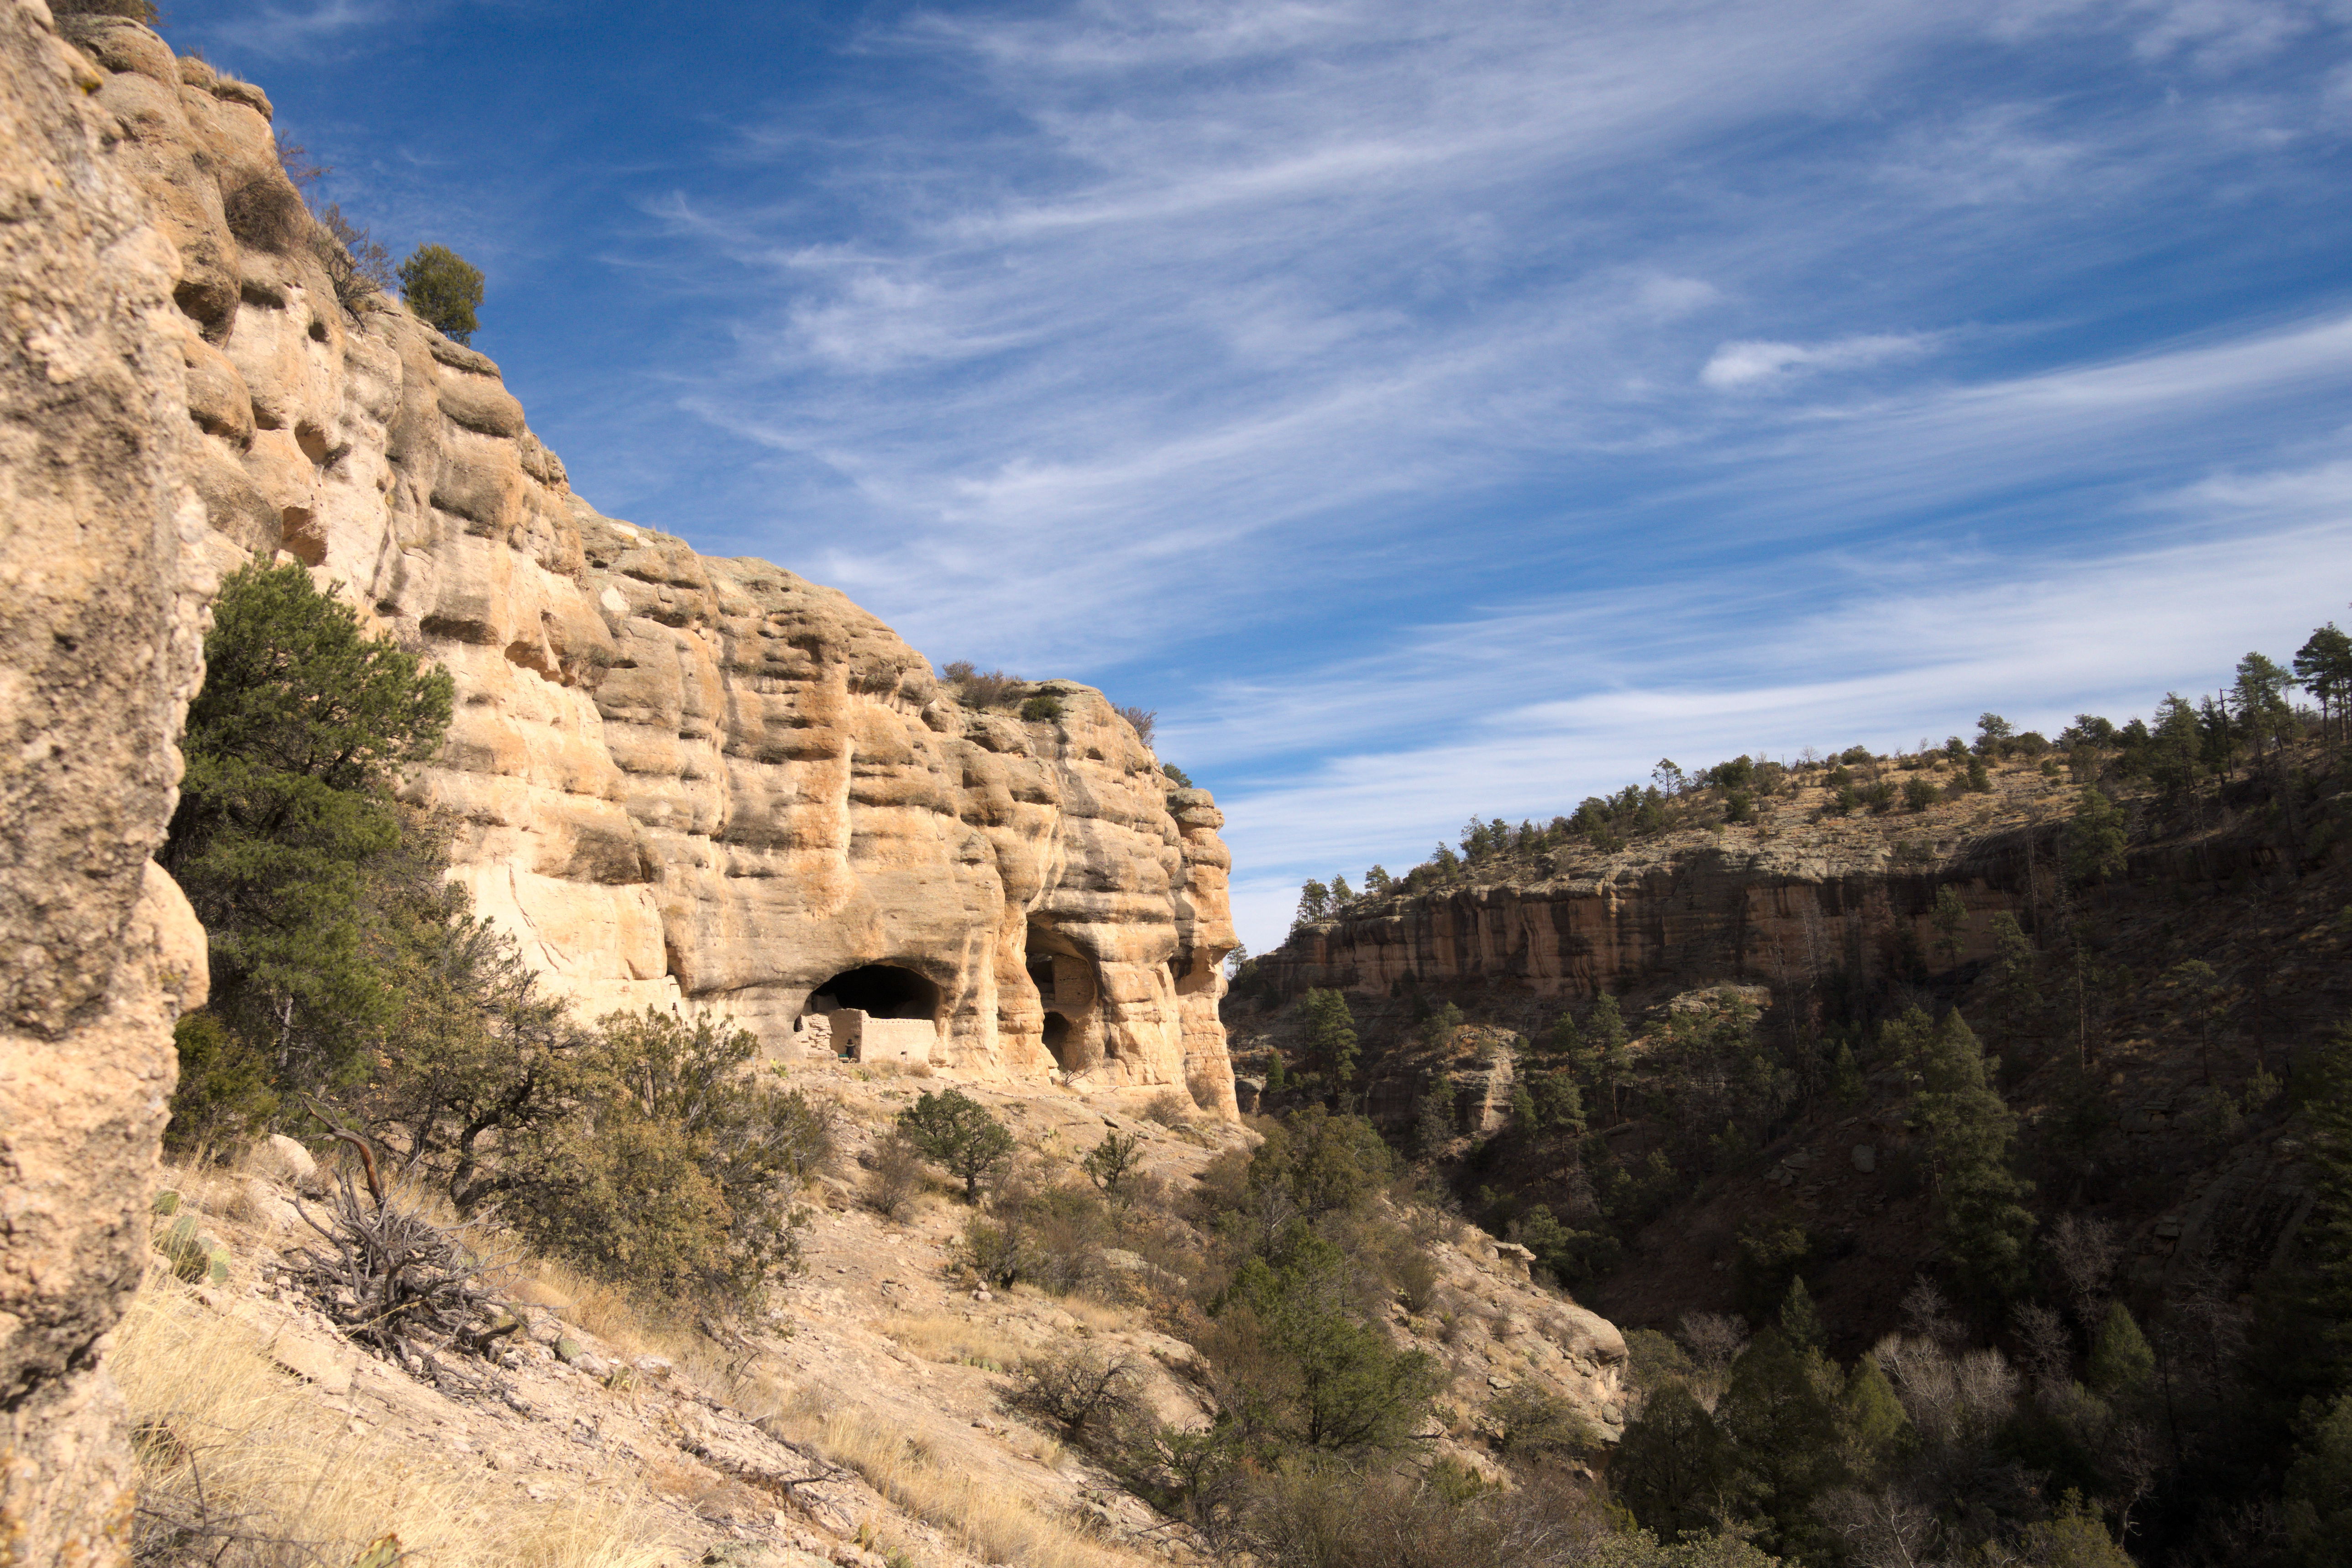 Walking into the Gila Cliff Dwellings, New Mexico